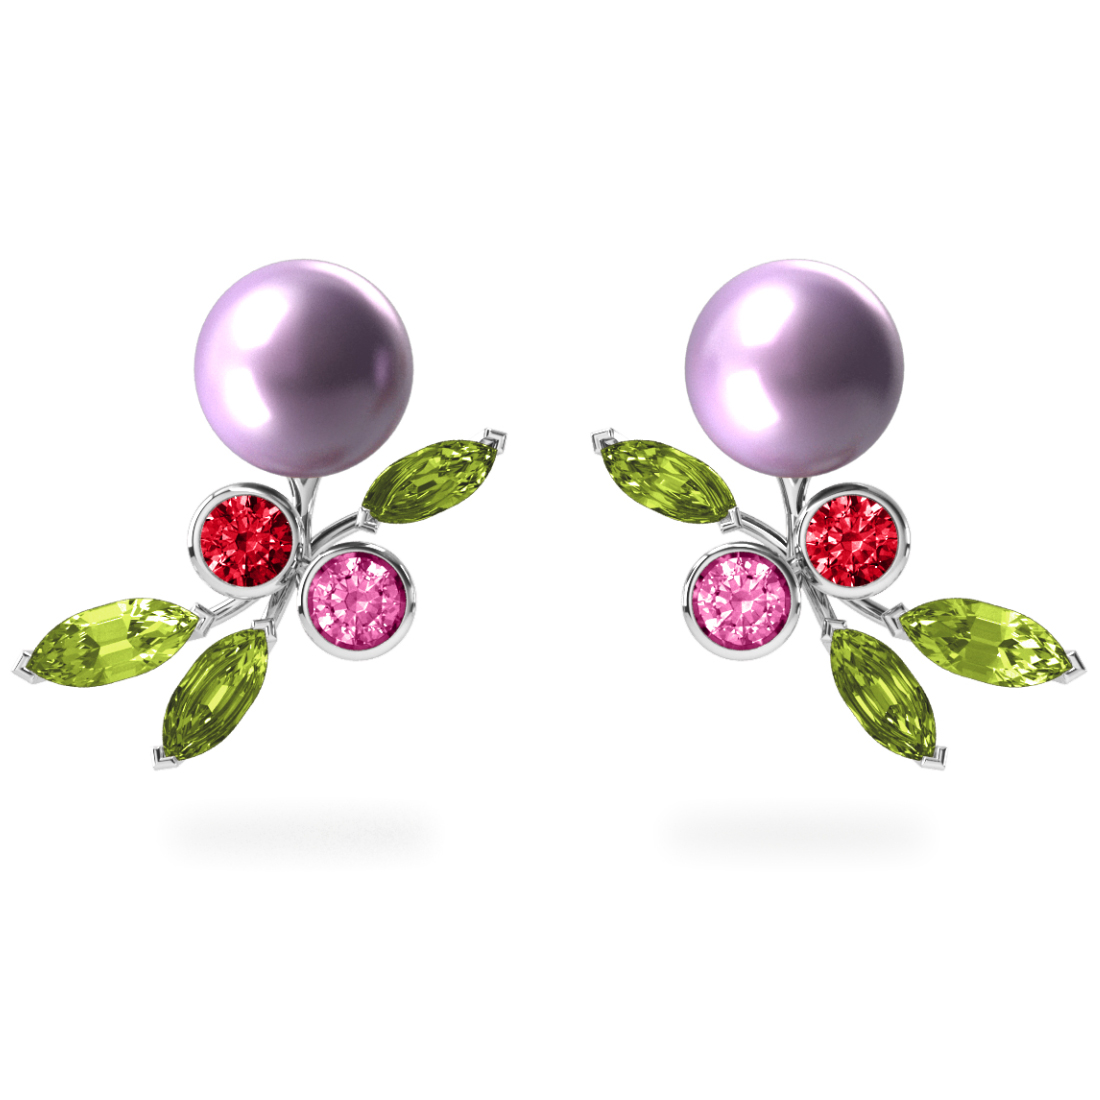 Boucles d'oreilles My Angel Mauve - Saphirs, diamants, péridots & perles d'eau douce <br /> Or blanc 18 carats